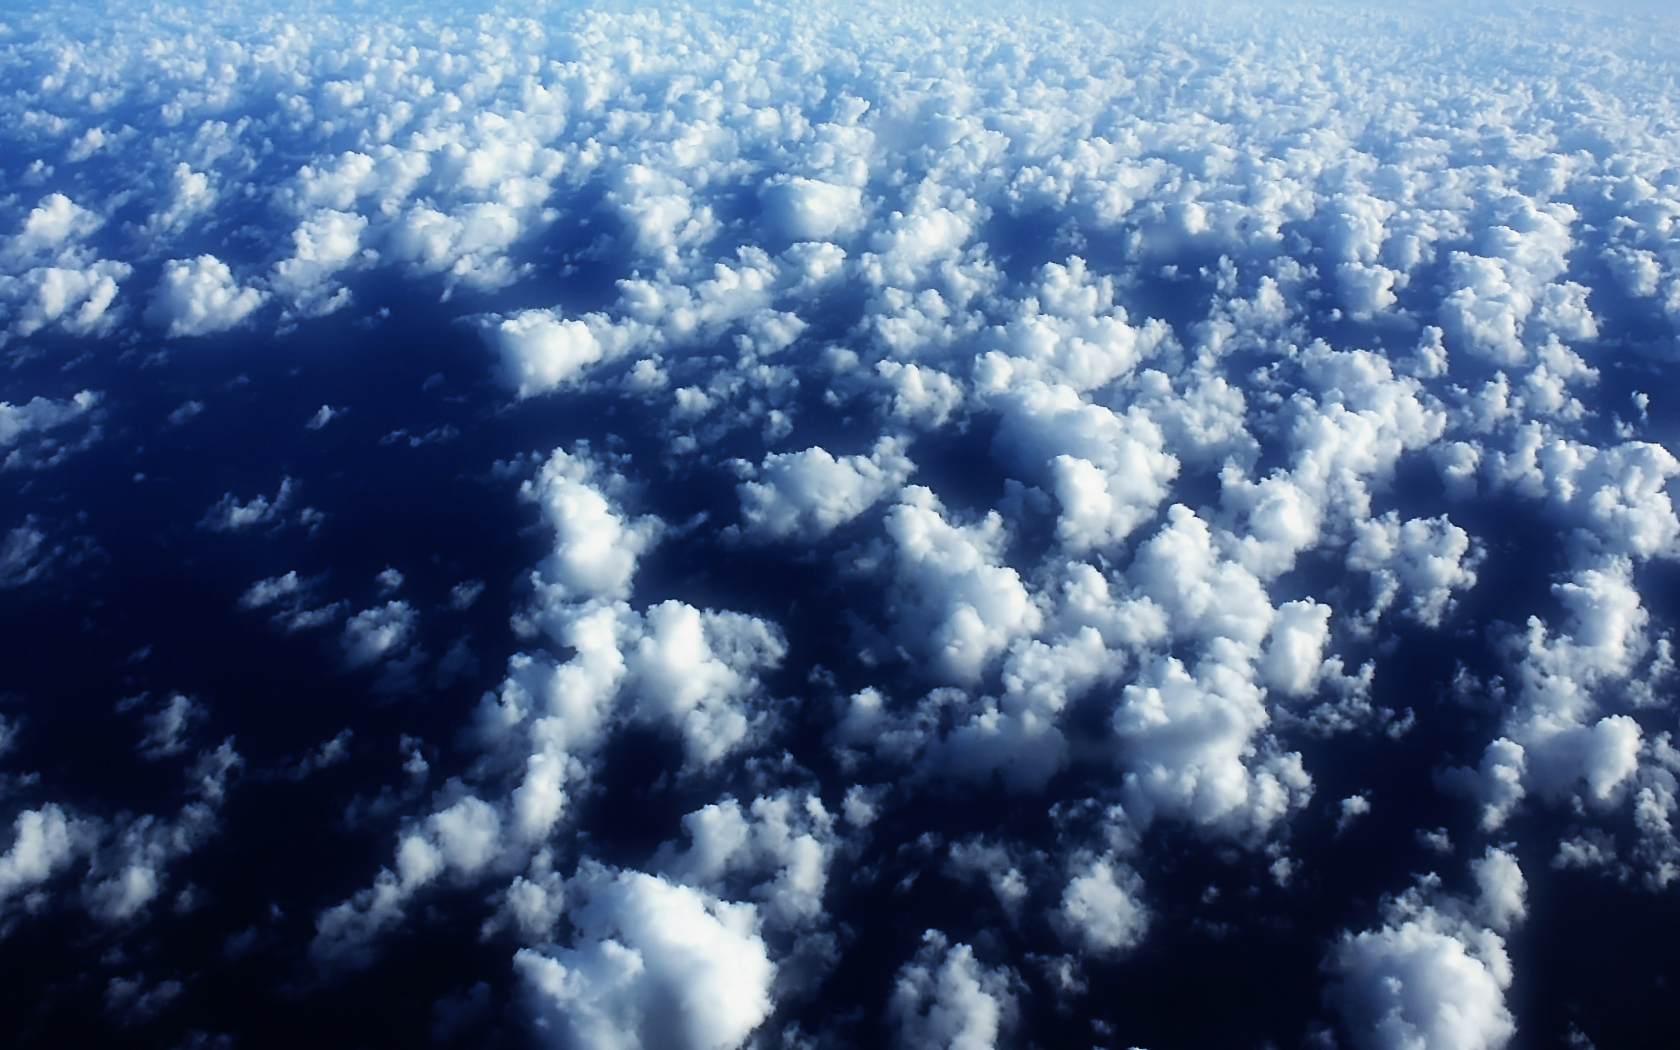 clouds image